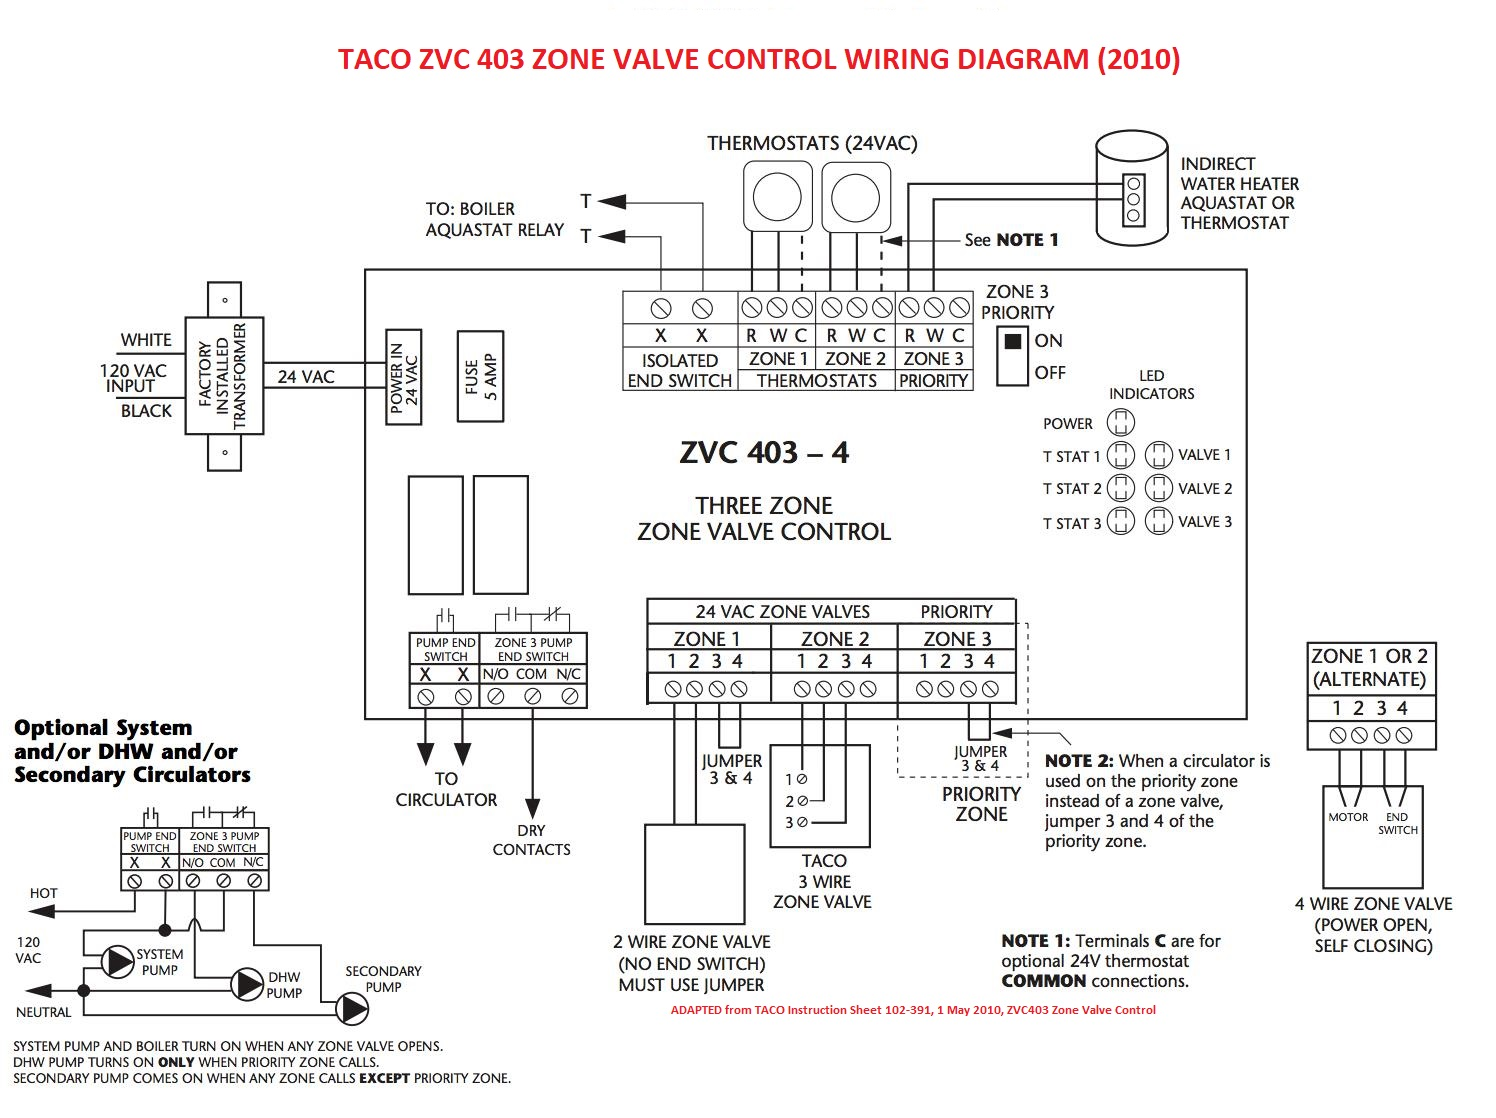 Comfortmaker Wiring Diagram - 2.5.asyaunited.de • on furnace blower wiring diagram, gas furnace diagram, york furnace diagram, gibson furnace diagram, intertherm furnace diagram, honeywell furnace diagram, coleman furnace diagram, lennox furnace diagram, carrier furnace diagram, airquest furnace diagram, whirlpool furnace diagram, tappan furnace diagram, frigidaire furnace diagram, janitrol furnace diagram, rheem furnace diagram, peerless furnace diagram, nordyne furnace diagram, bryant furnace diagram, trane furnace diagram, day & night furnace diagram,